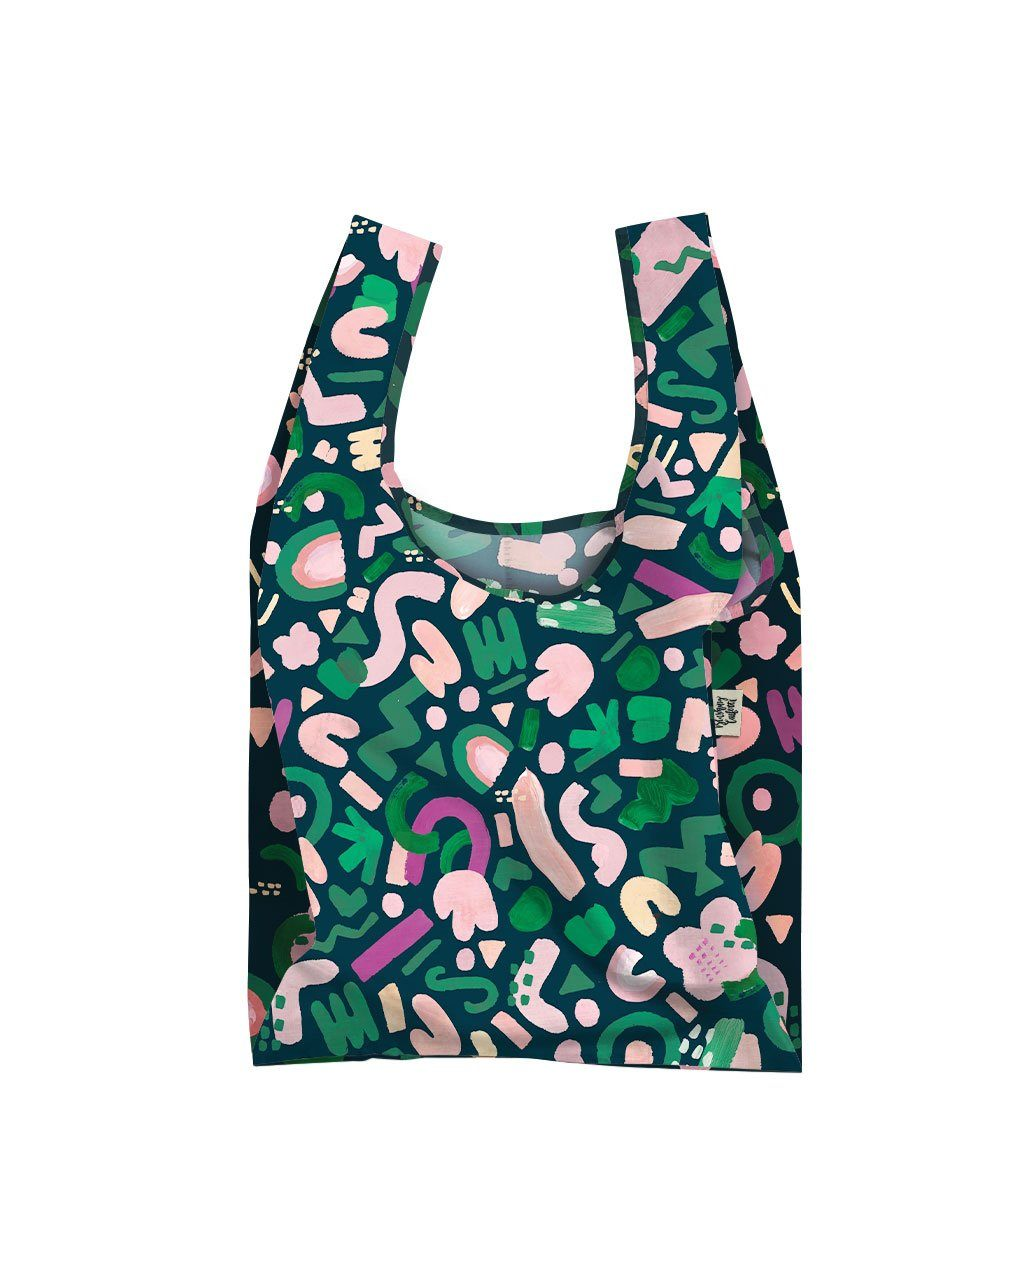 Botanical Allsorts Reusable Shopping Bag